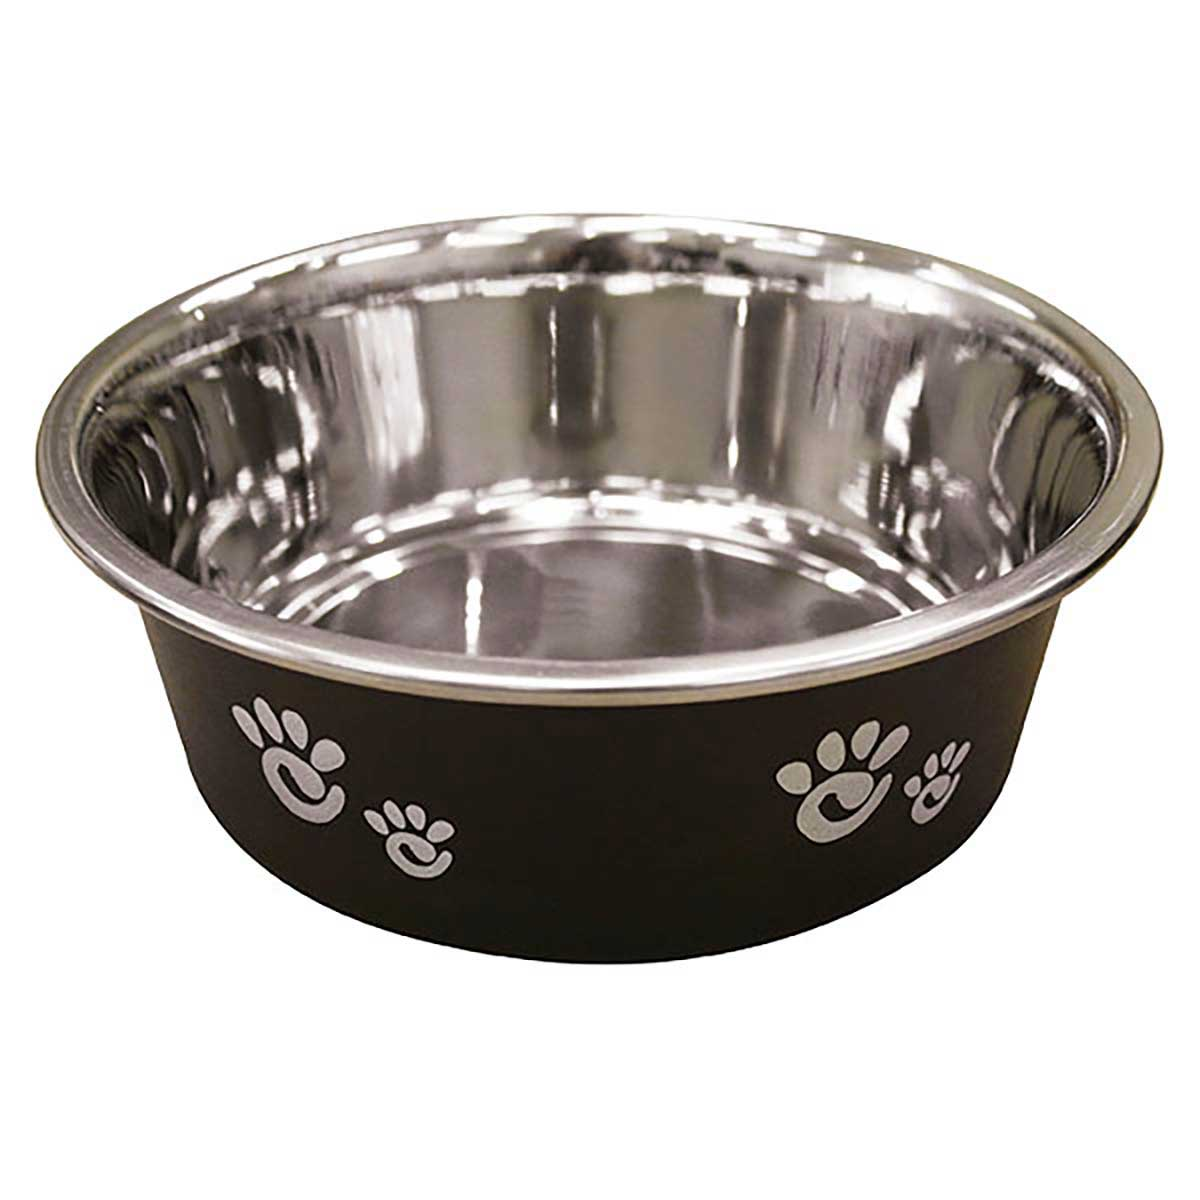 16 oz Barcelona Dog Bowl Matte Licorice/Black